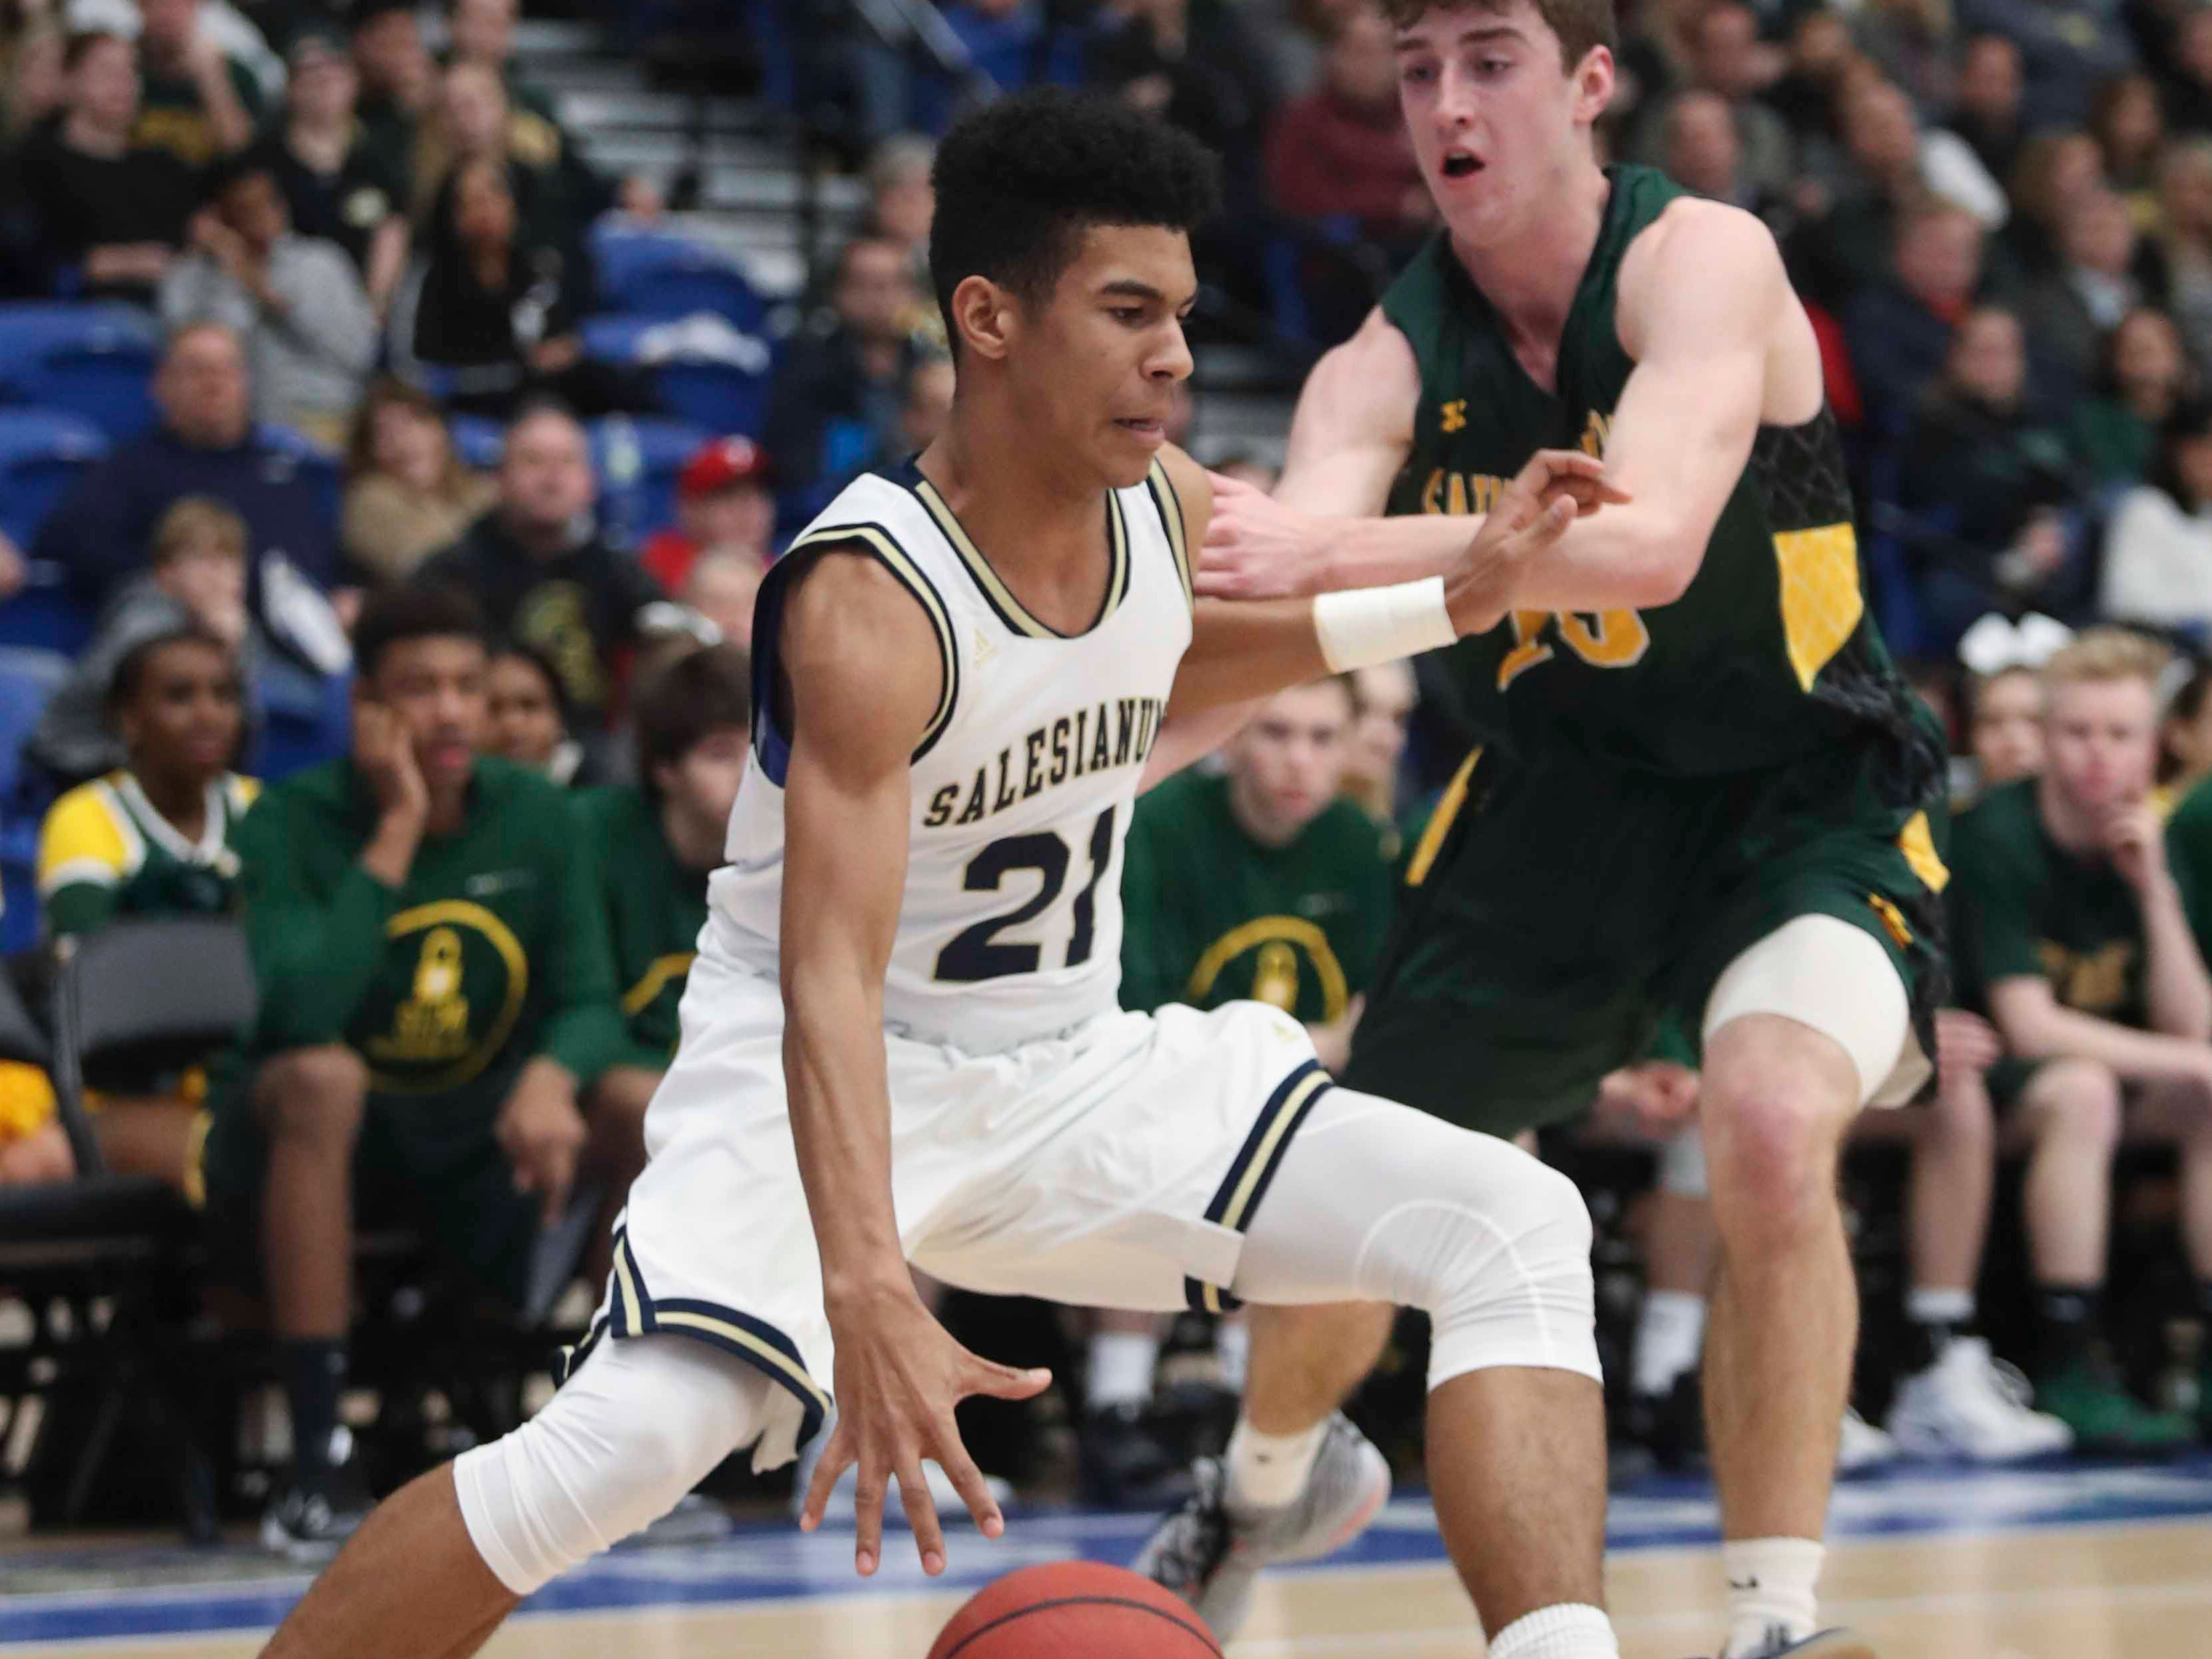 Salesianum's Ethan Hinds (left) moves against St. Mark's Victor Marcelo in the SL24 Memorial Basketball Classic at the 76ers Fieldhouse in Wilmington Friday.